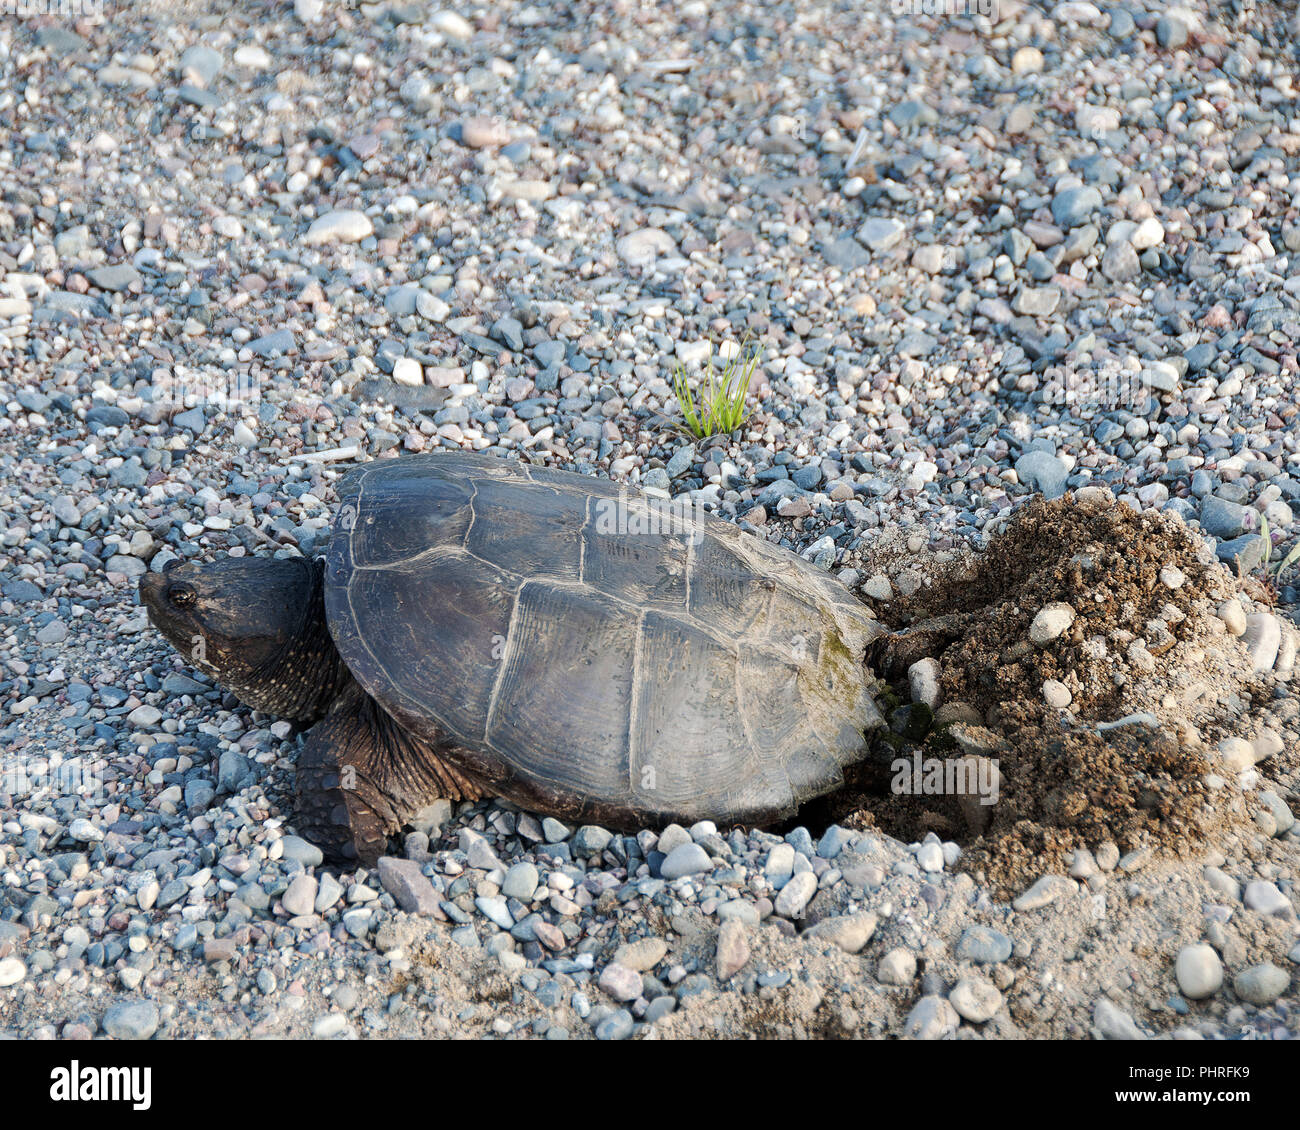 Snapping turtle ponding in its environment. Stock Photo